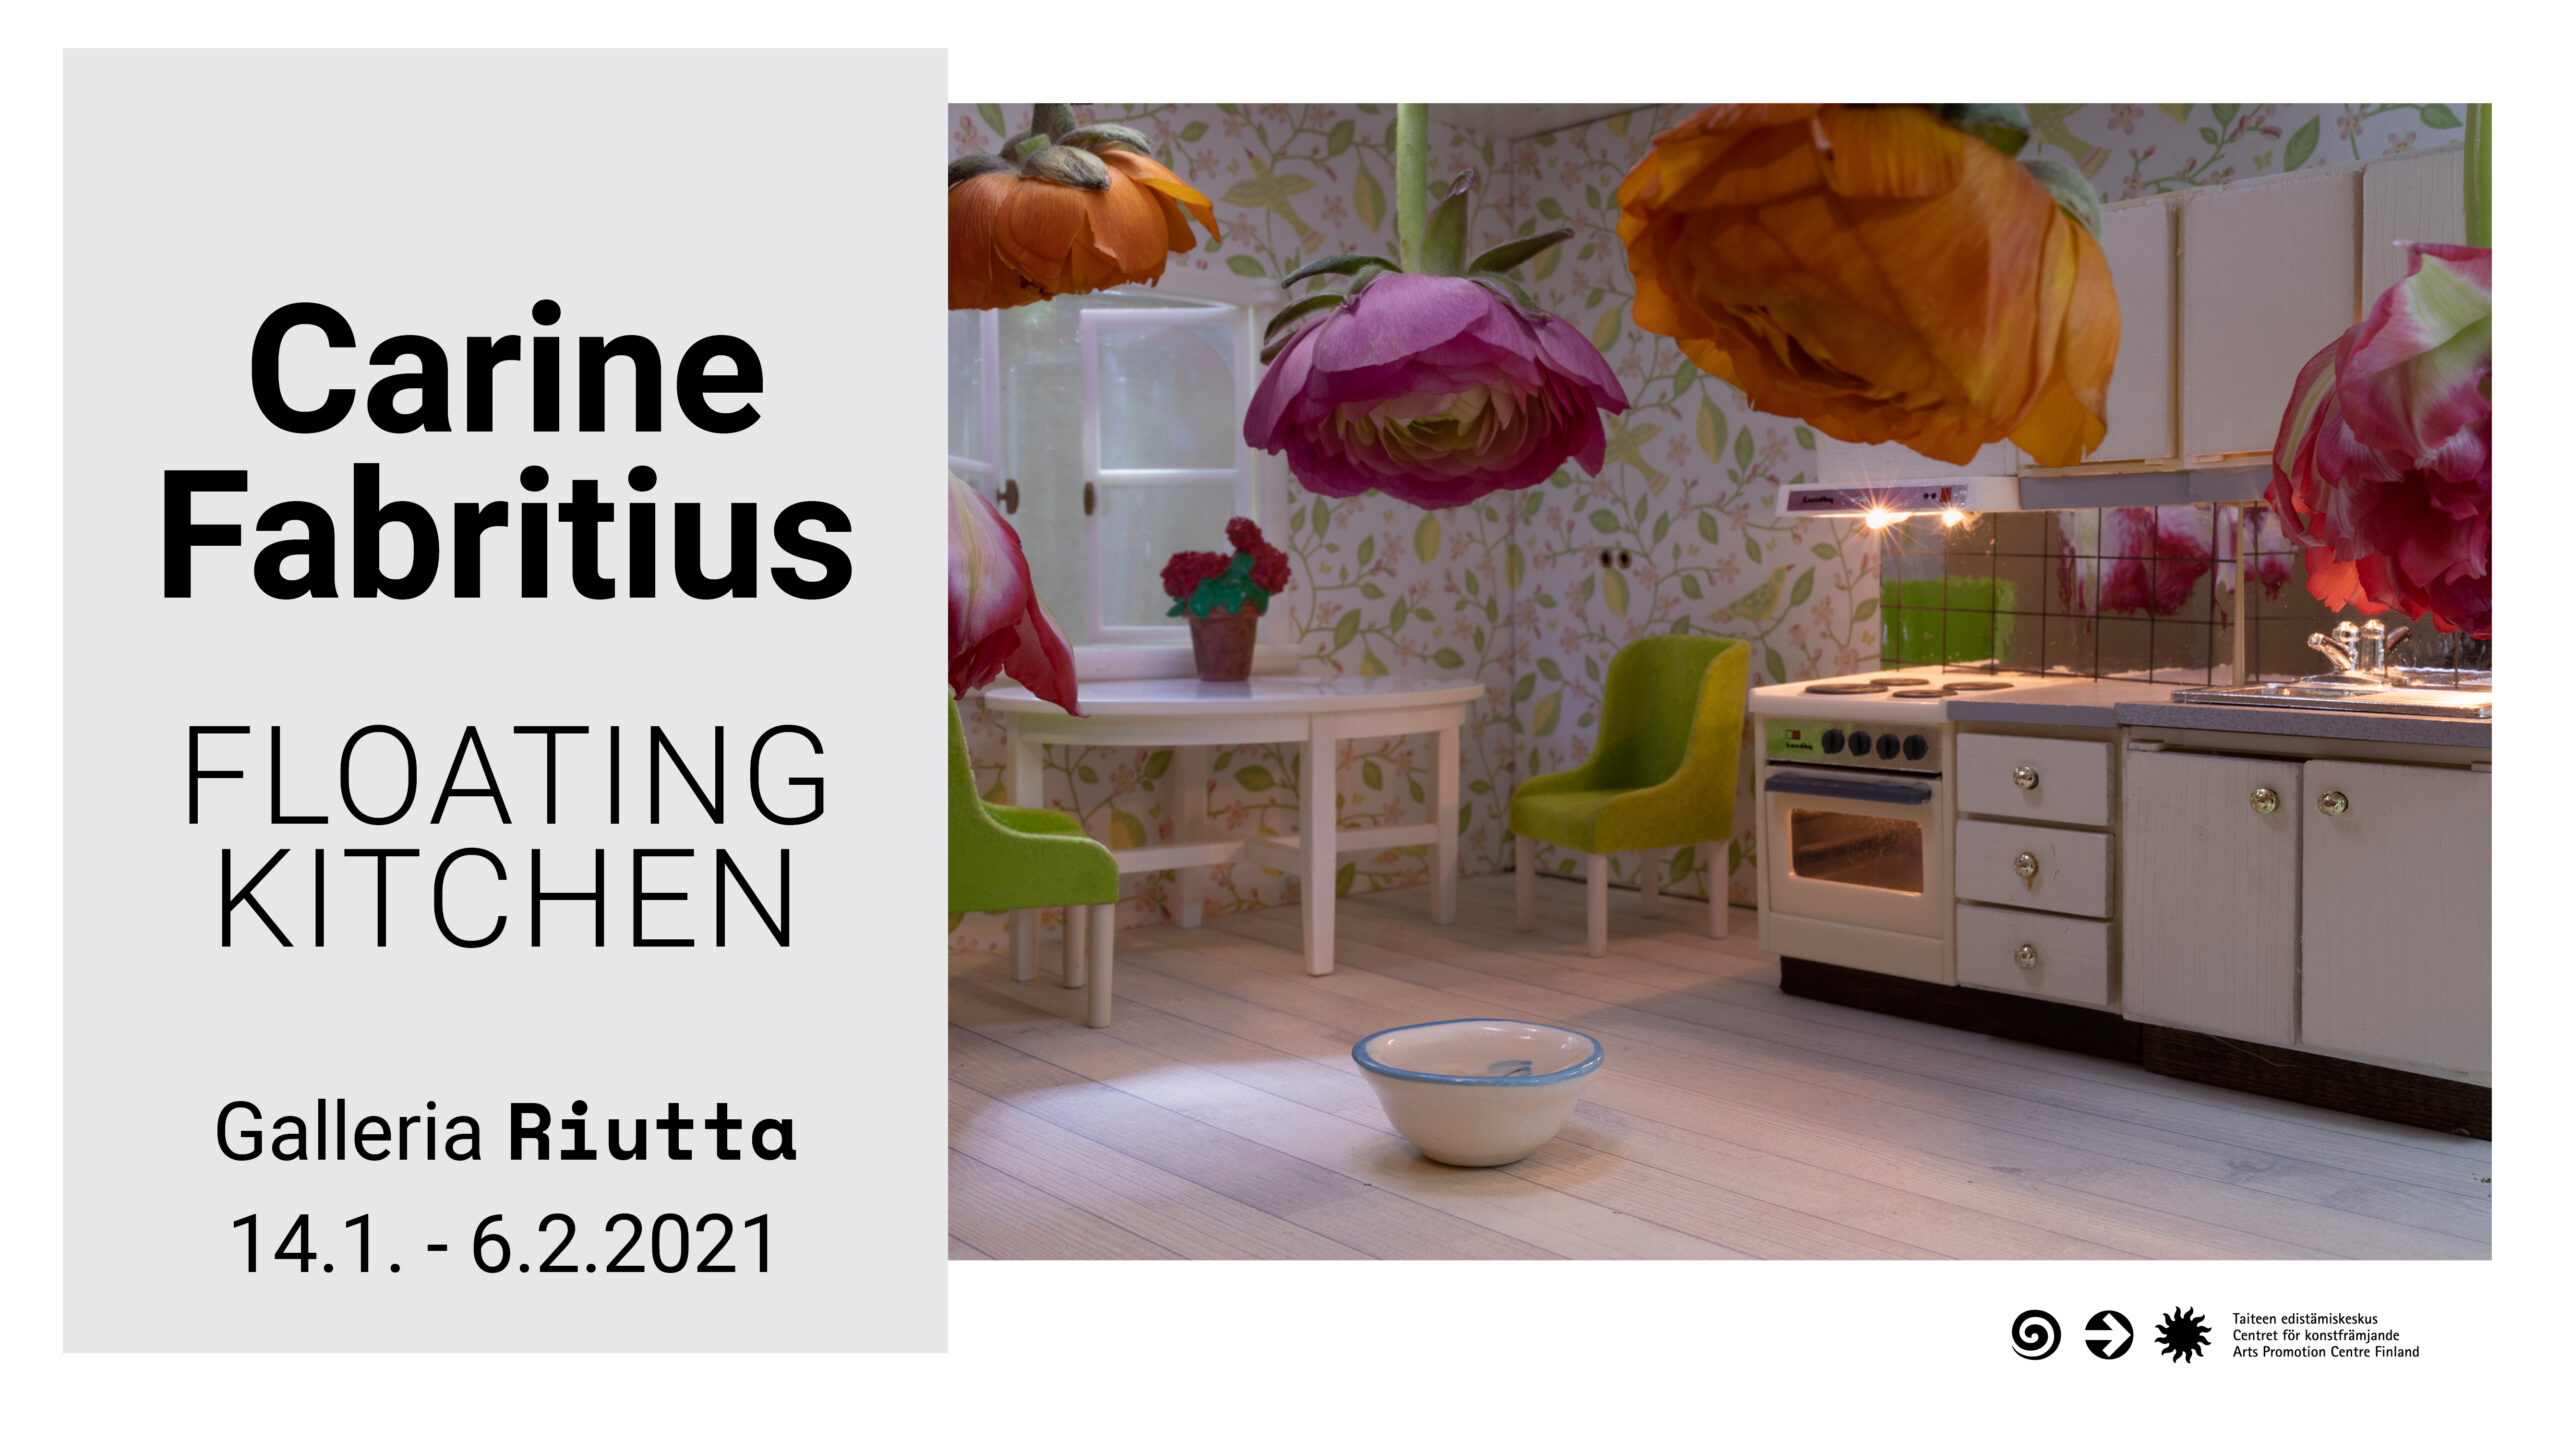 RIUTTA  – Carine Fabritius — Floating Kitchen 14.1.2021-6.2.2021